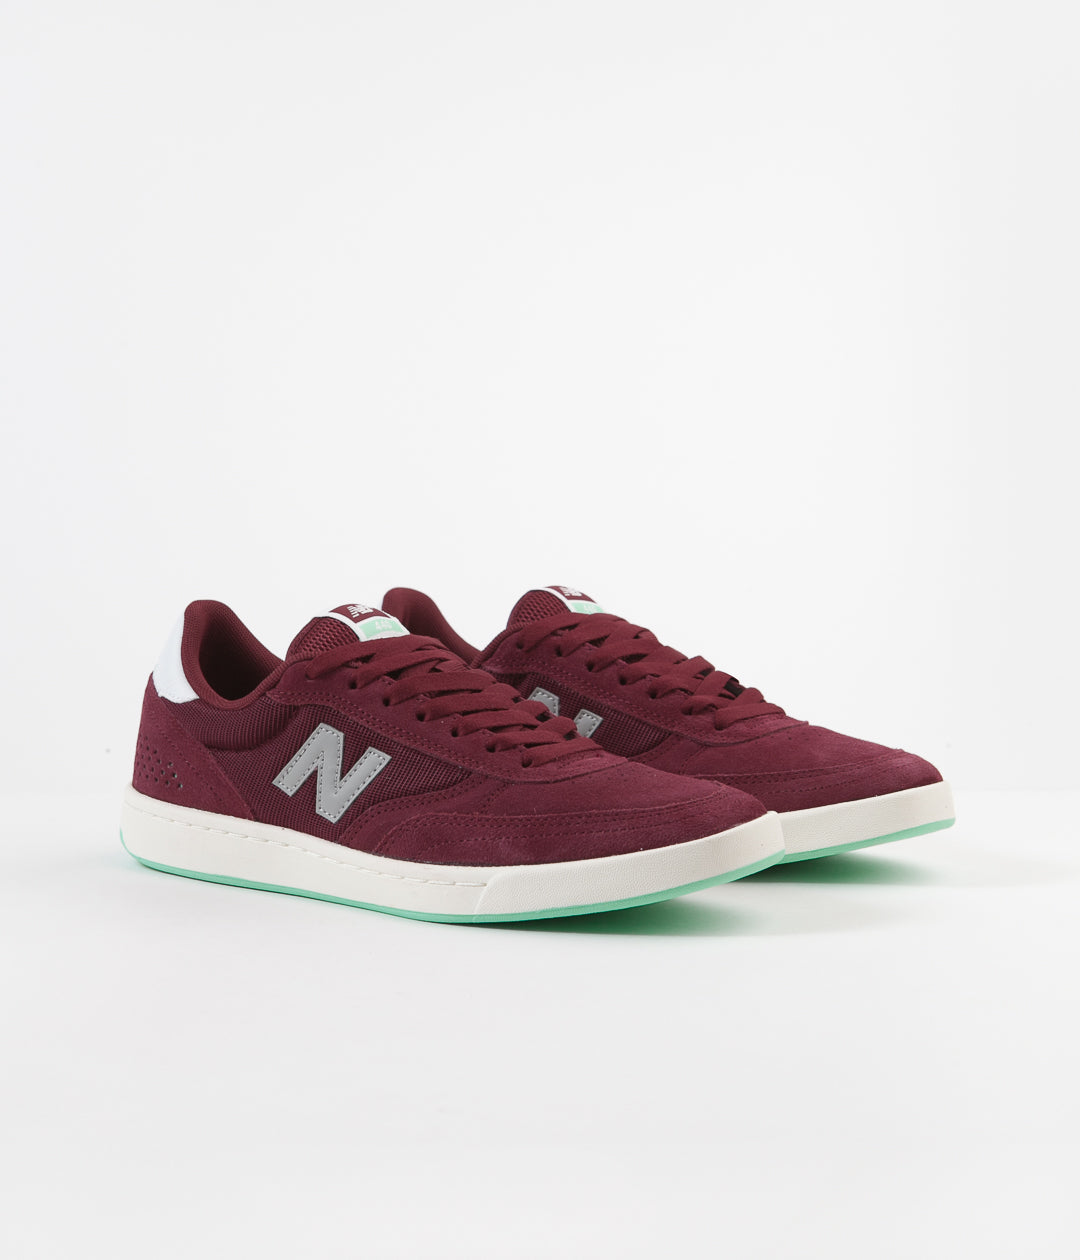 New Balance Numeric 440 Shoes - Burgundy / Grey